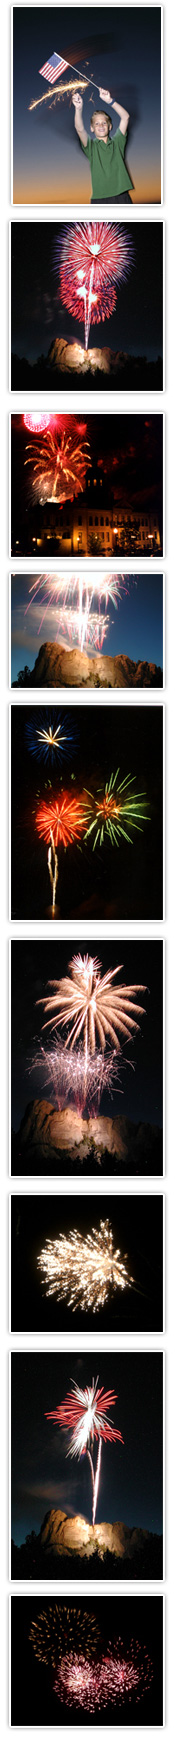 Pictures of firework